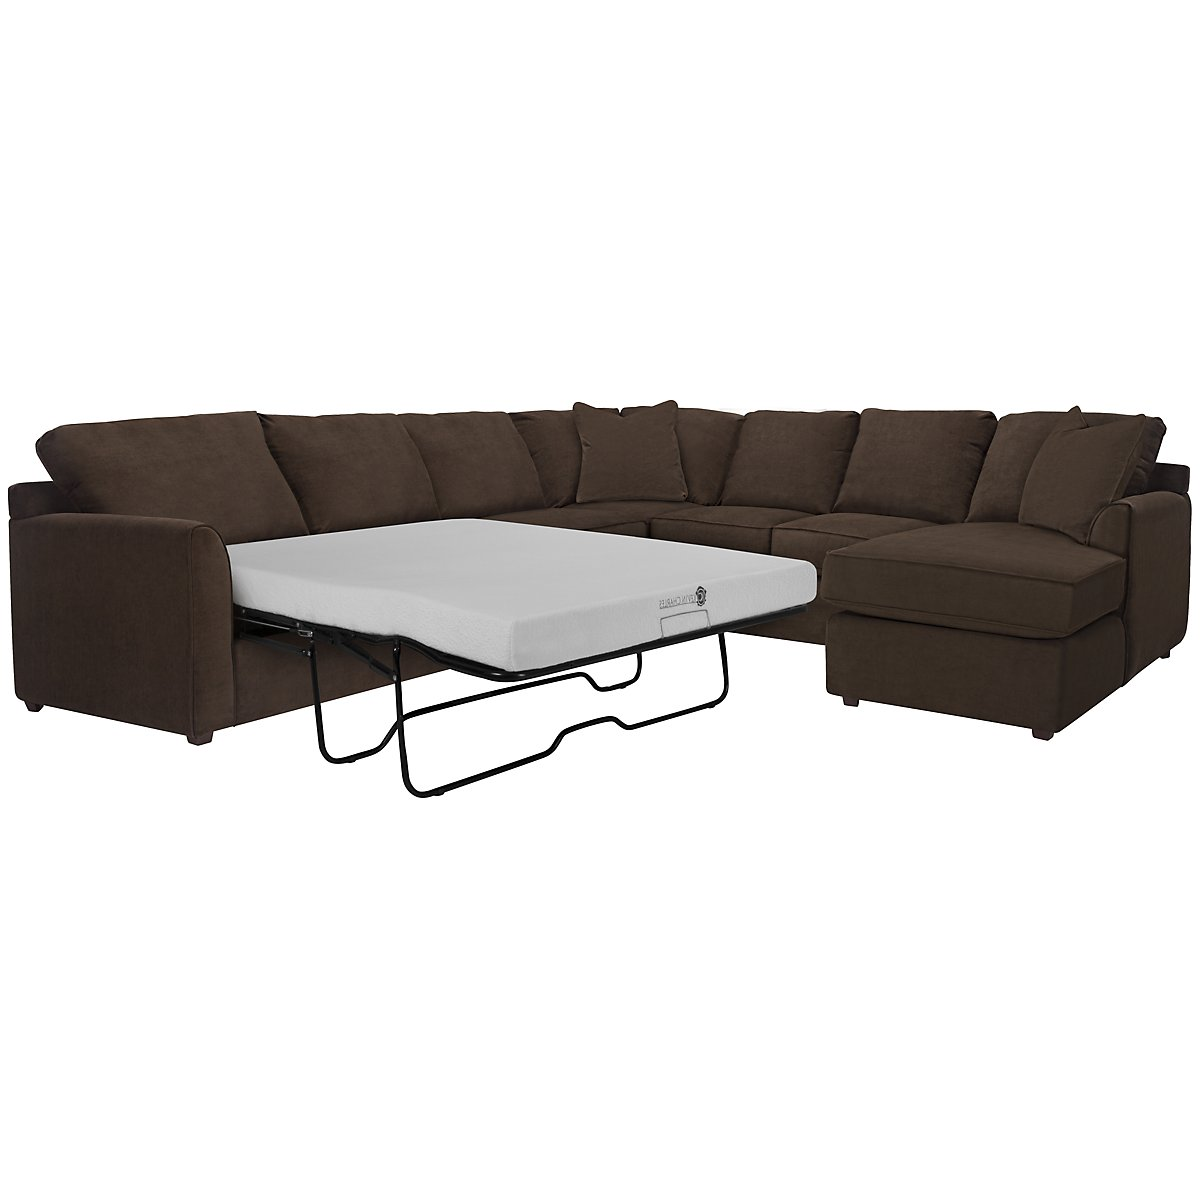 Express3 Dk Brown Microfiber Right Chaise Memory Foam Sleeper Sectional